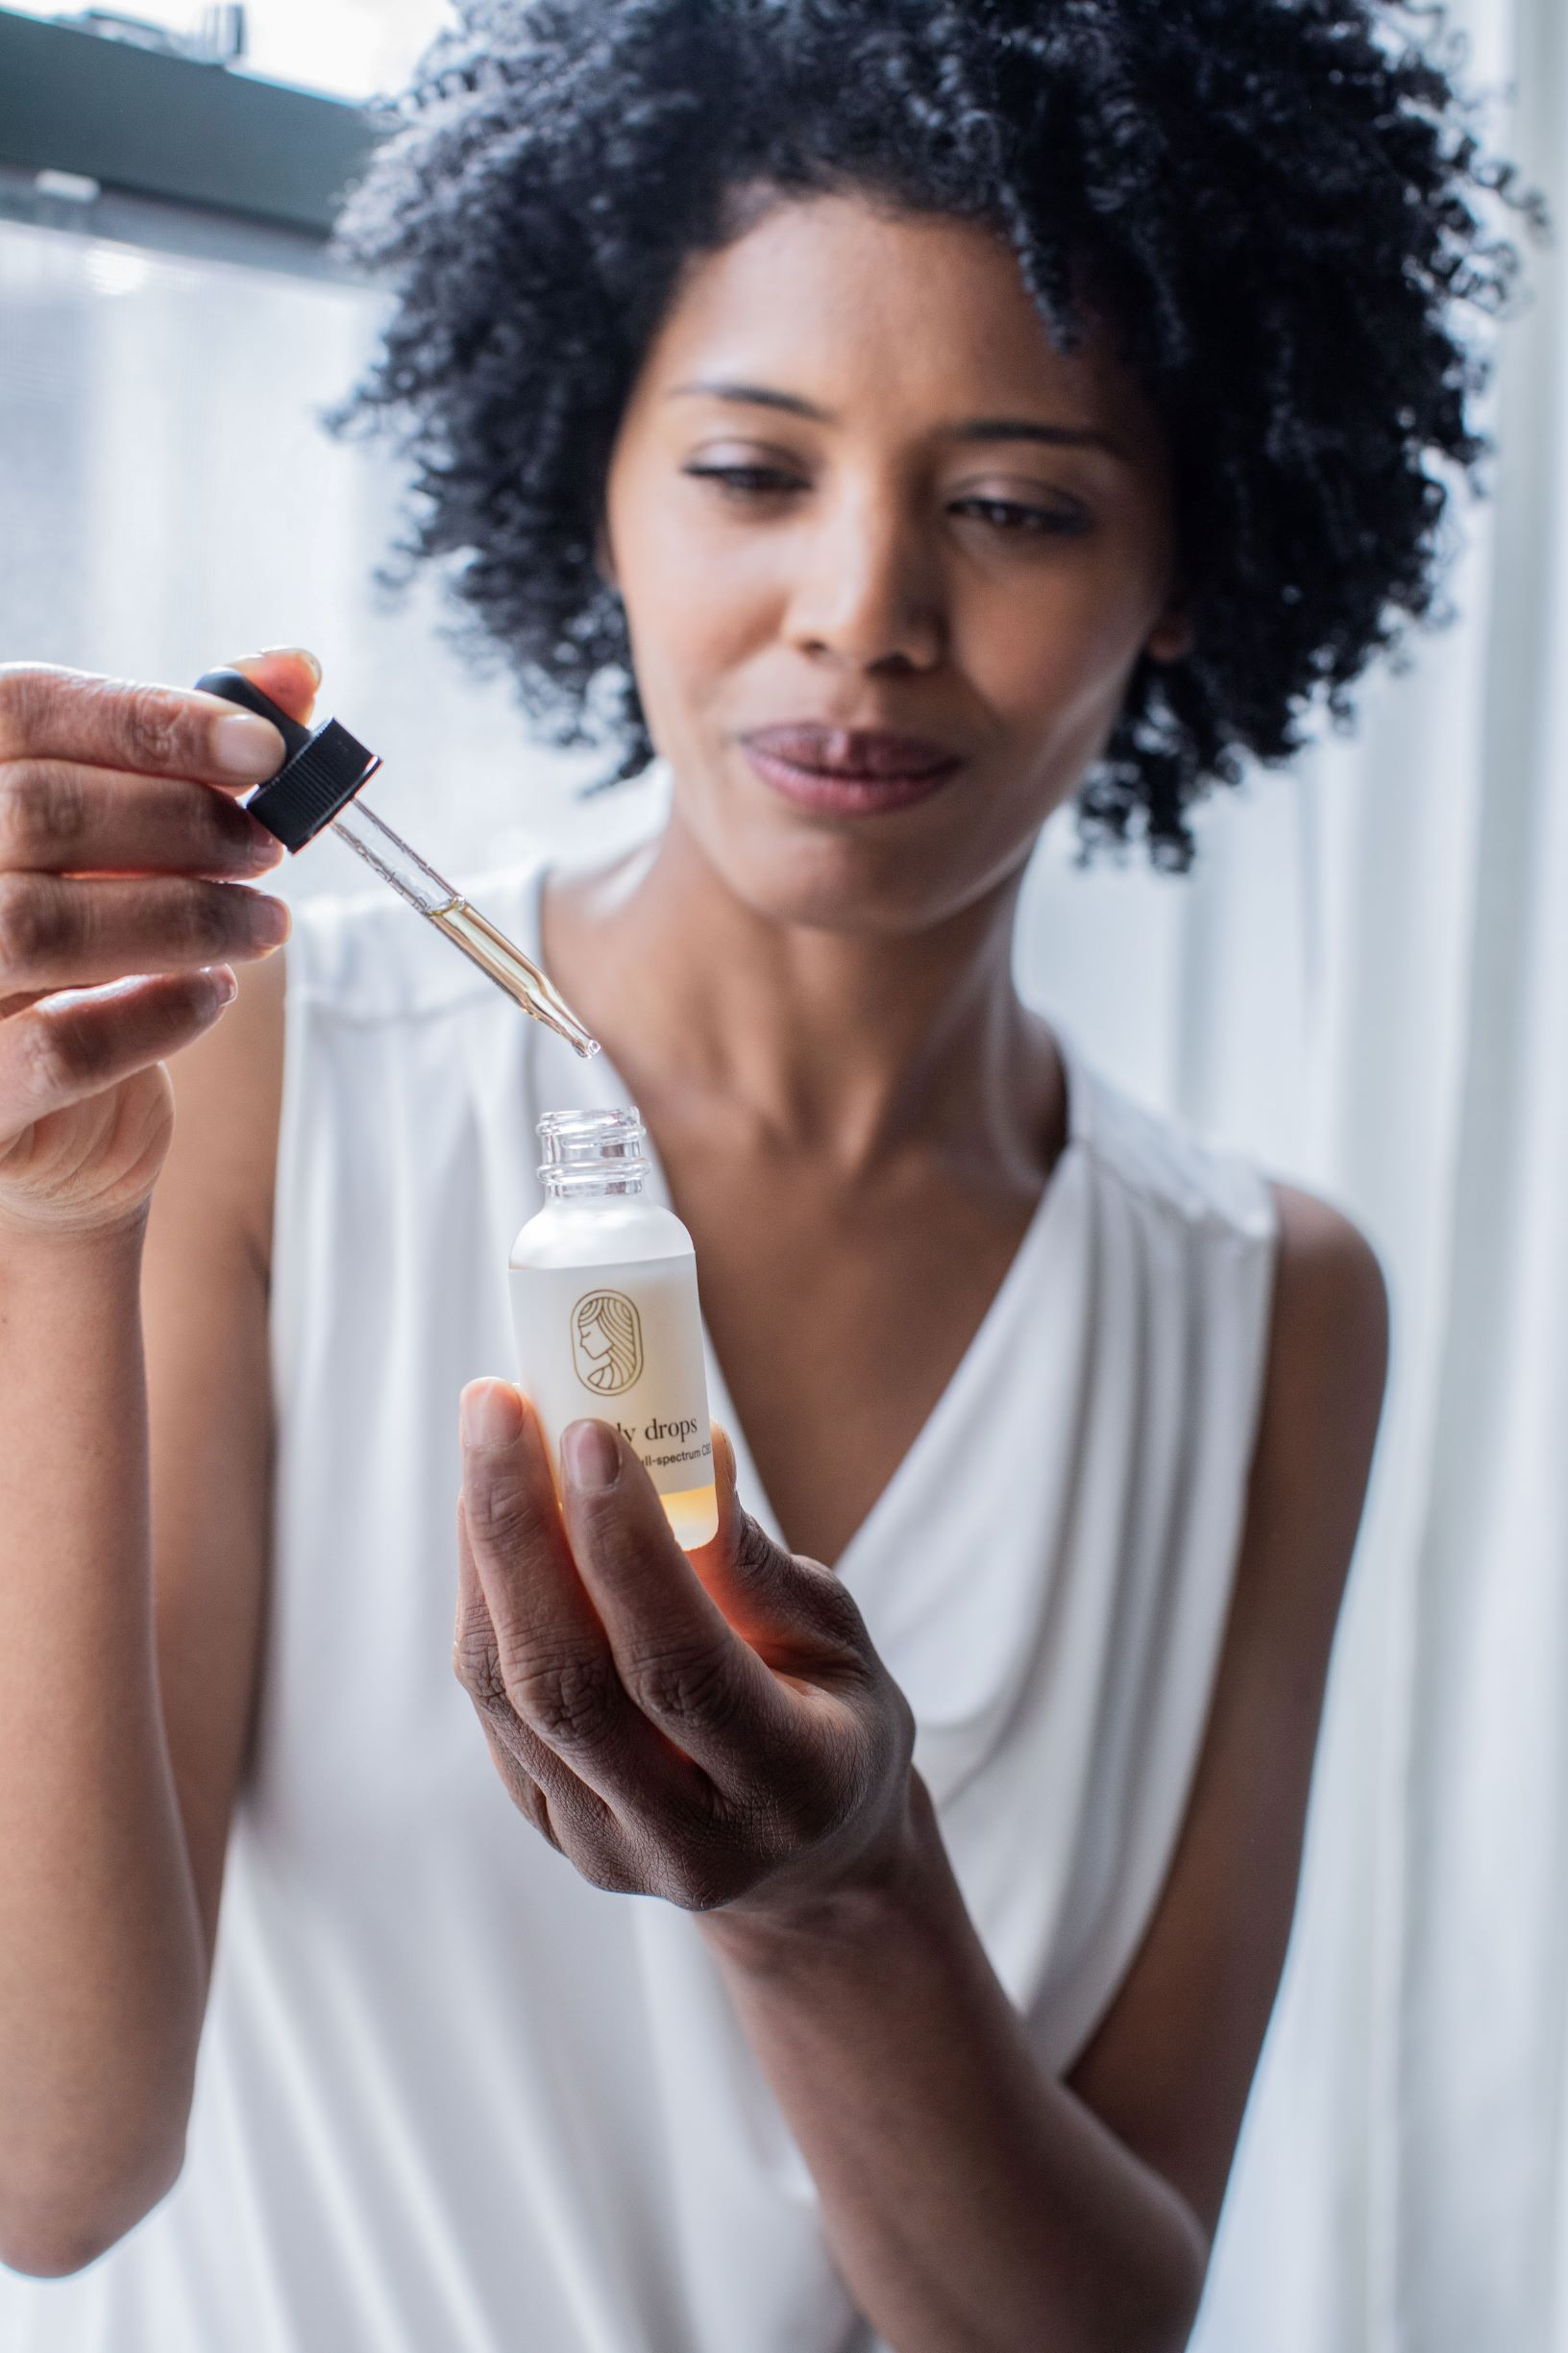 How to Get the Most Out of Your CBD Routine Right Now